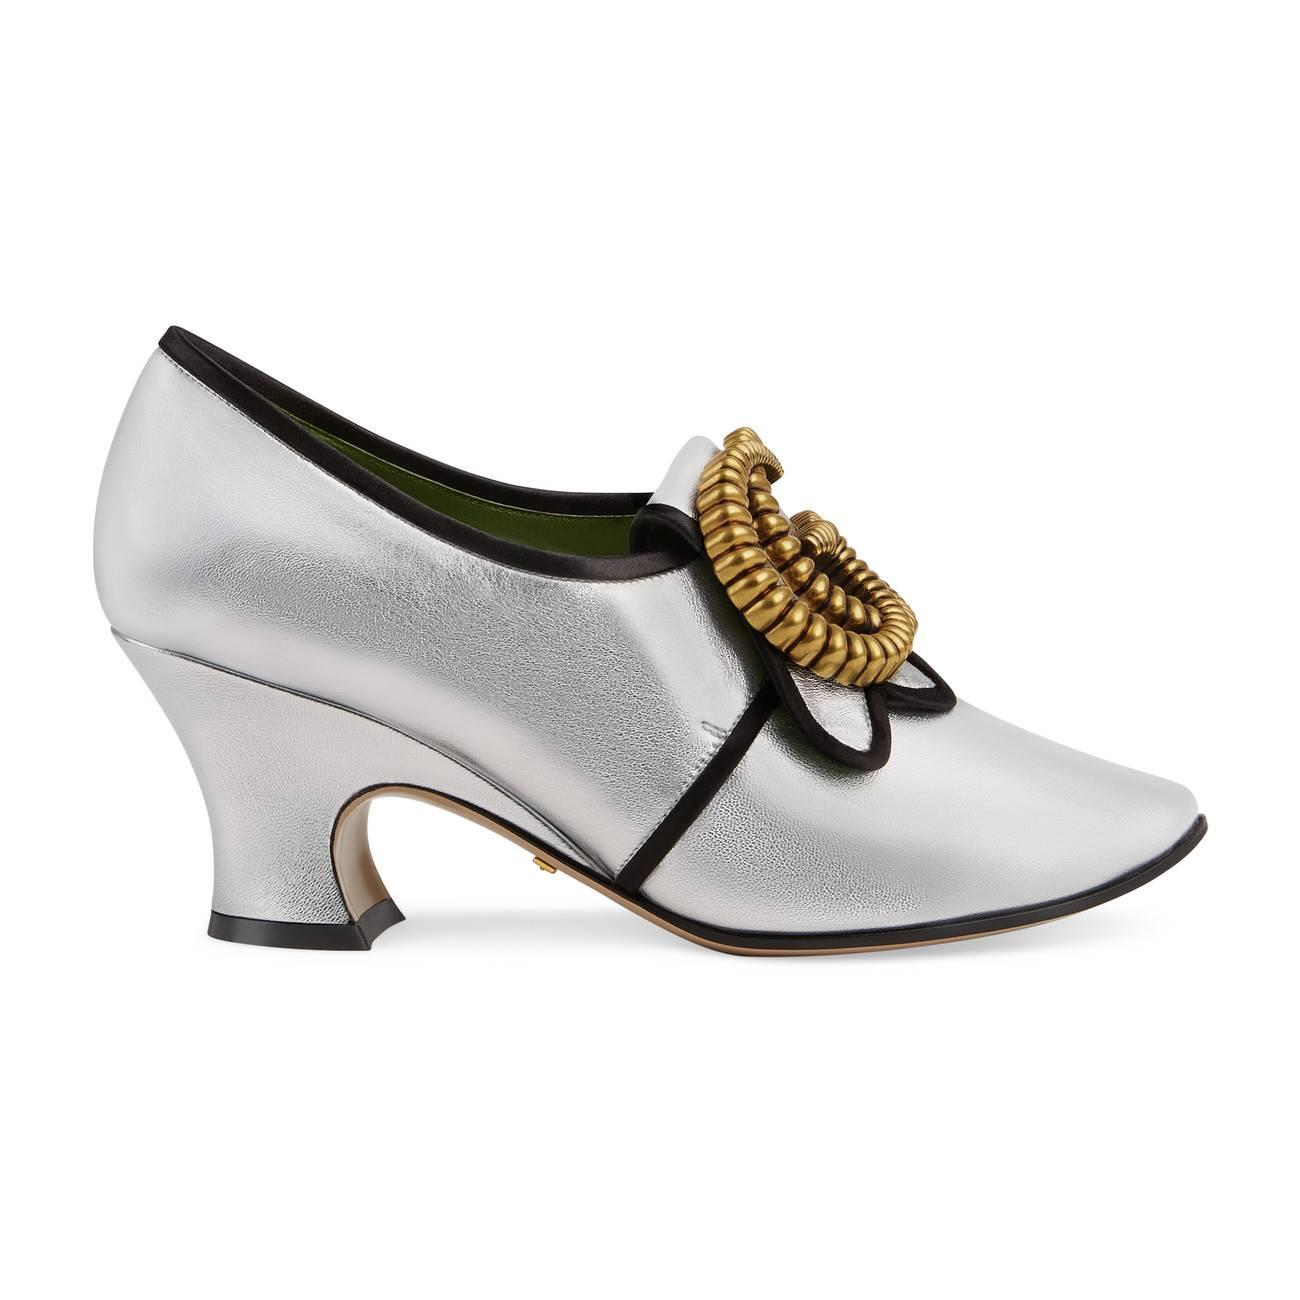 4bc158868ab Lyst - Gucci Metallic Leather Mid-heel Pump With Double G in Metallic